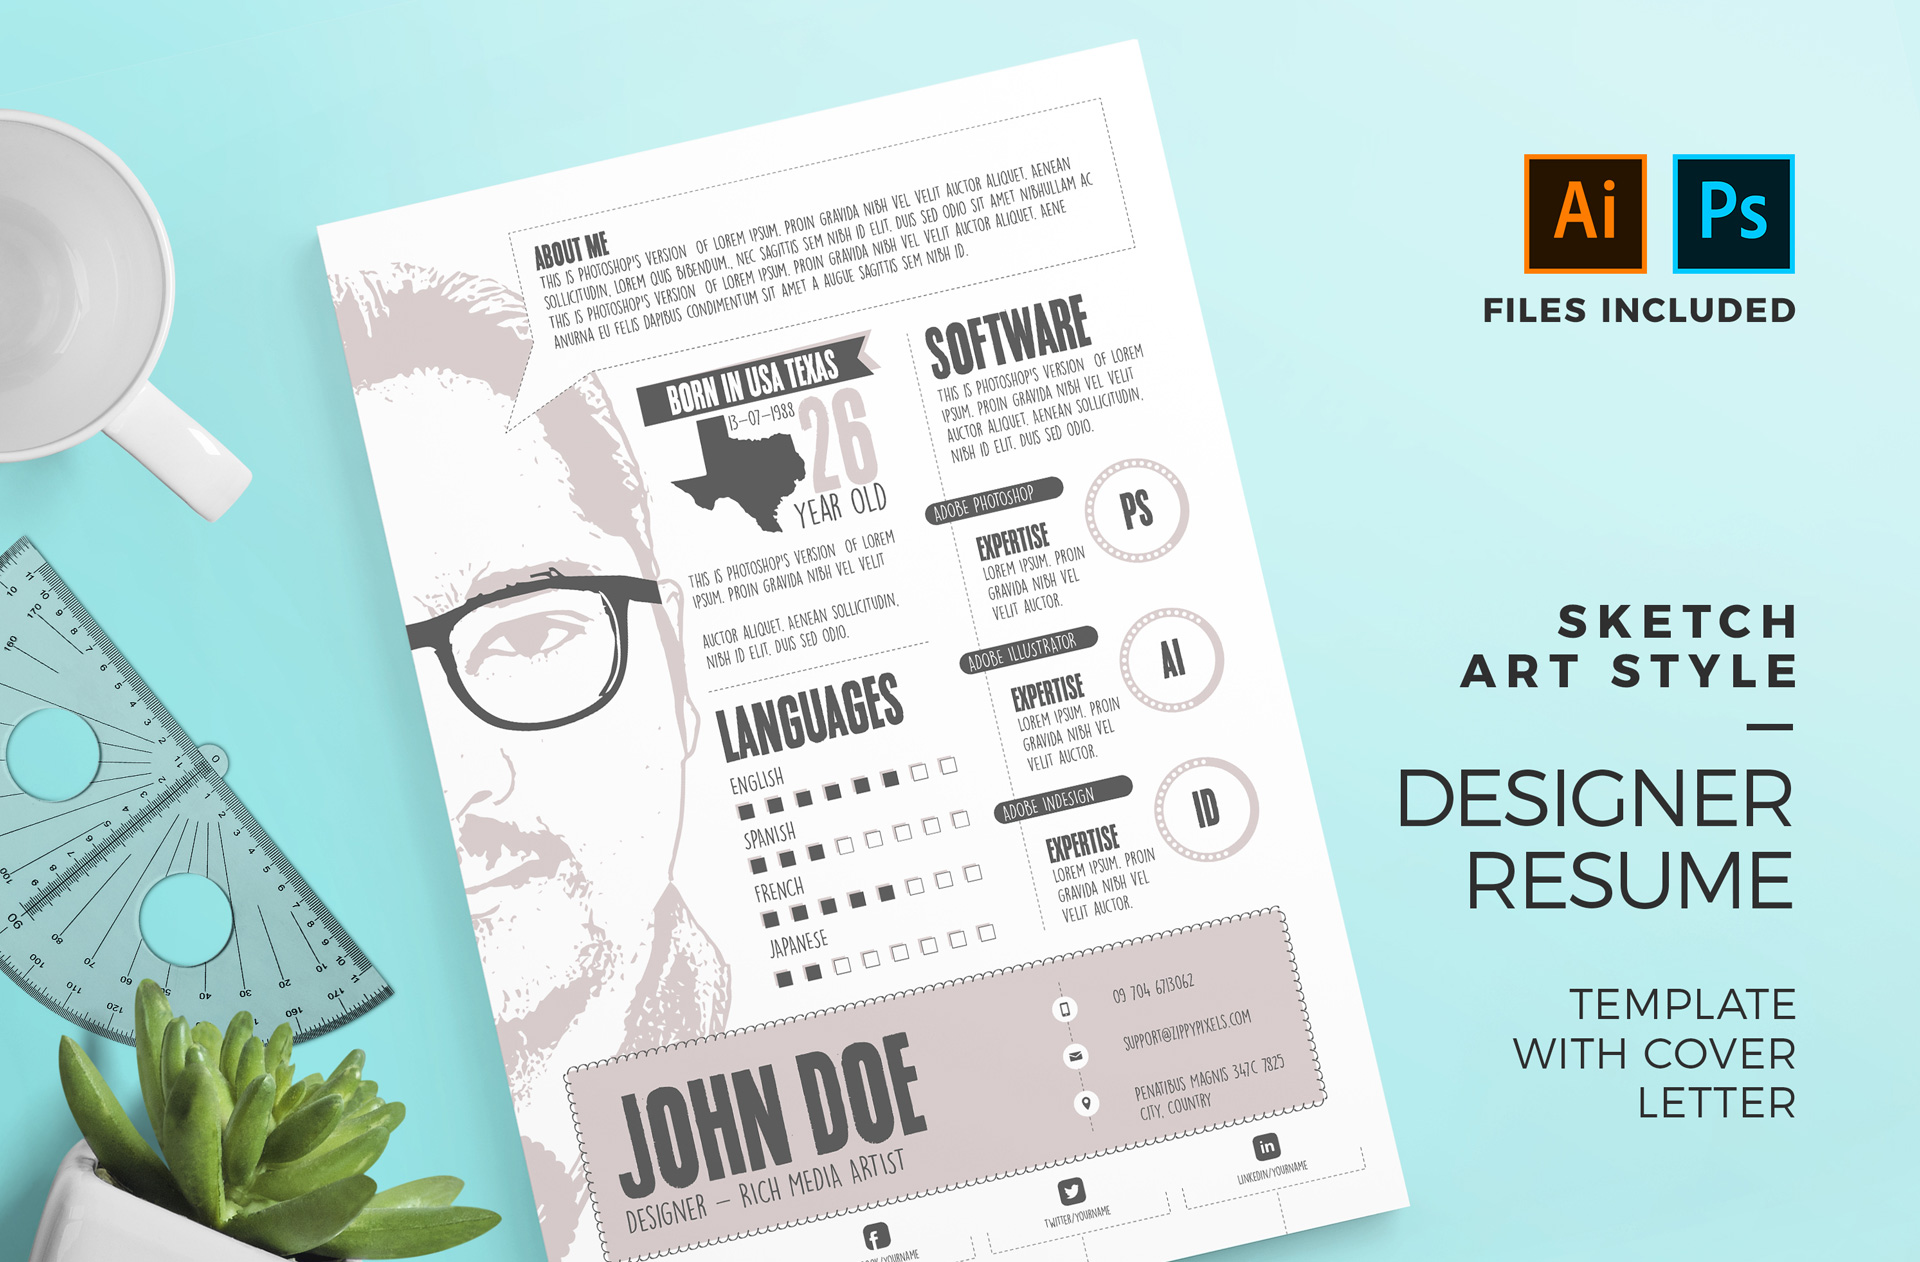 Sketch Art Style Designer Resume Template With Cover Letter PSD AI